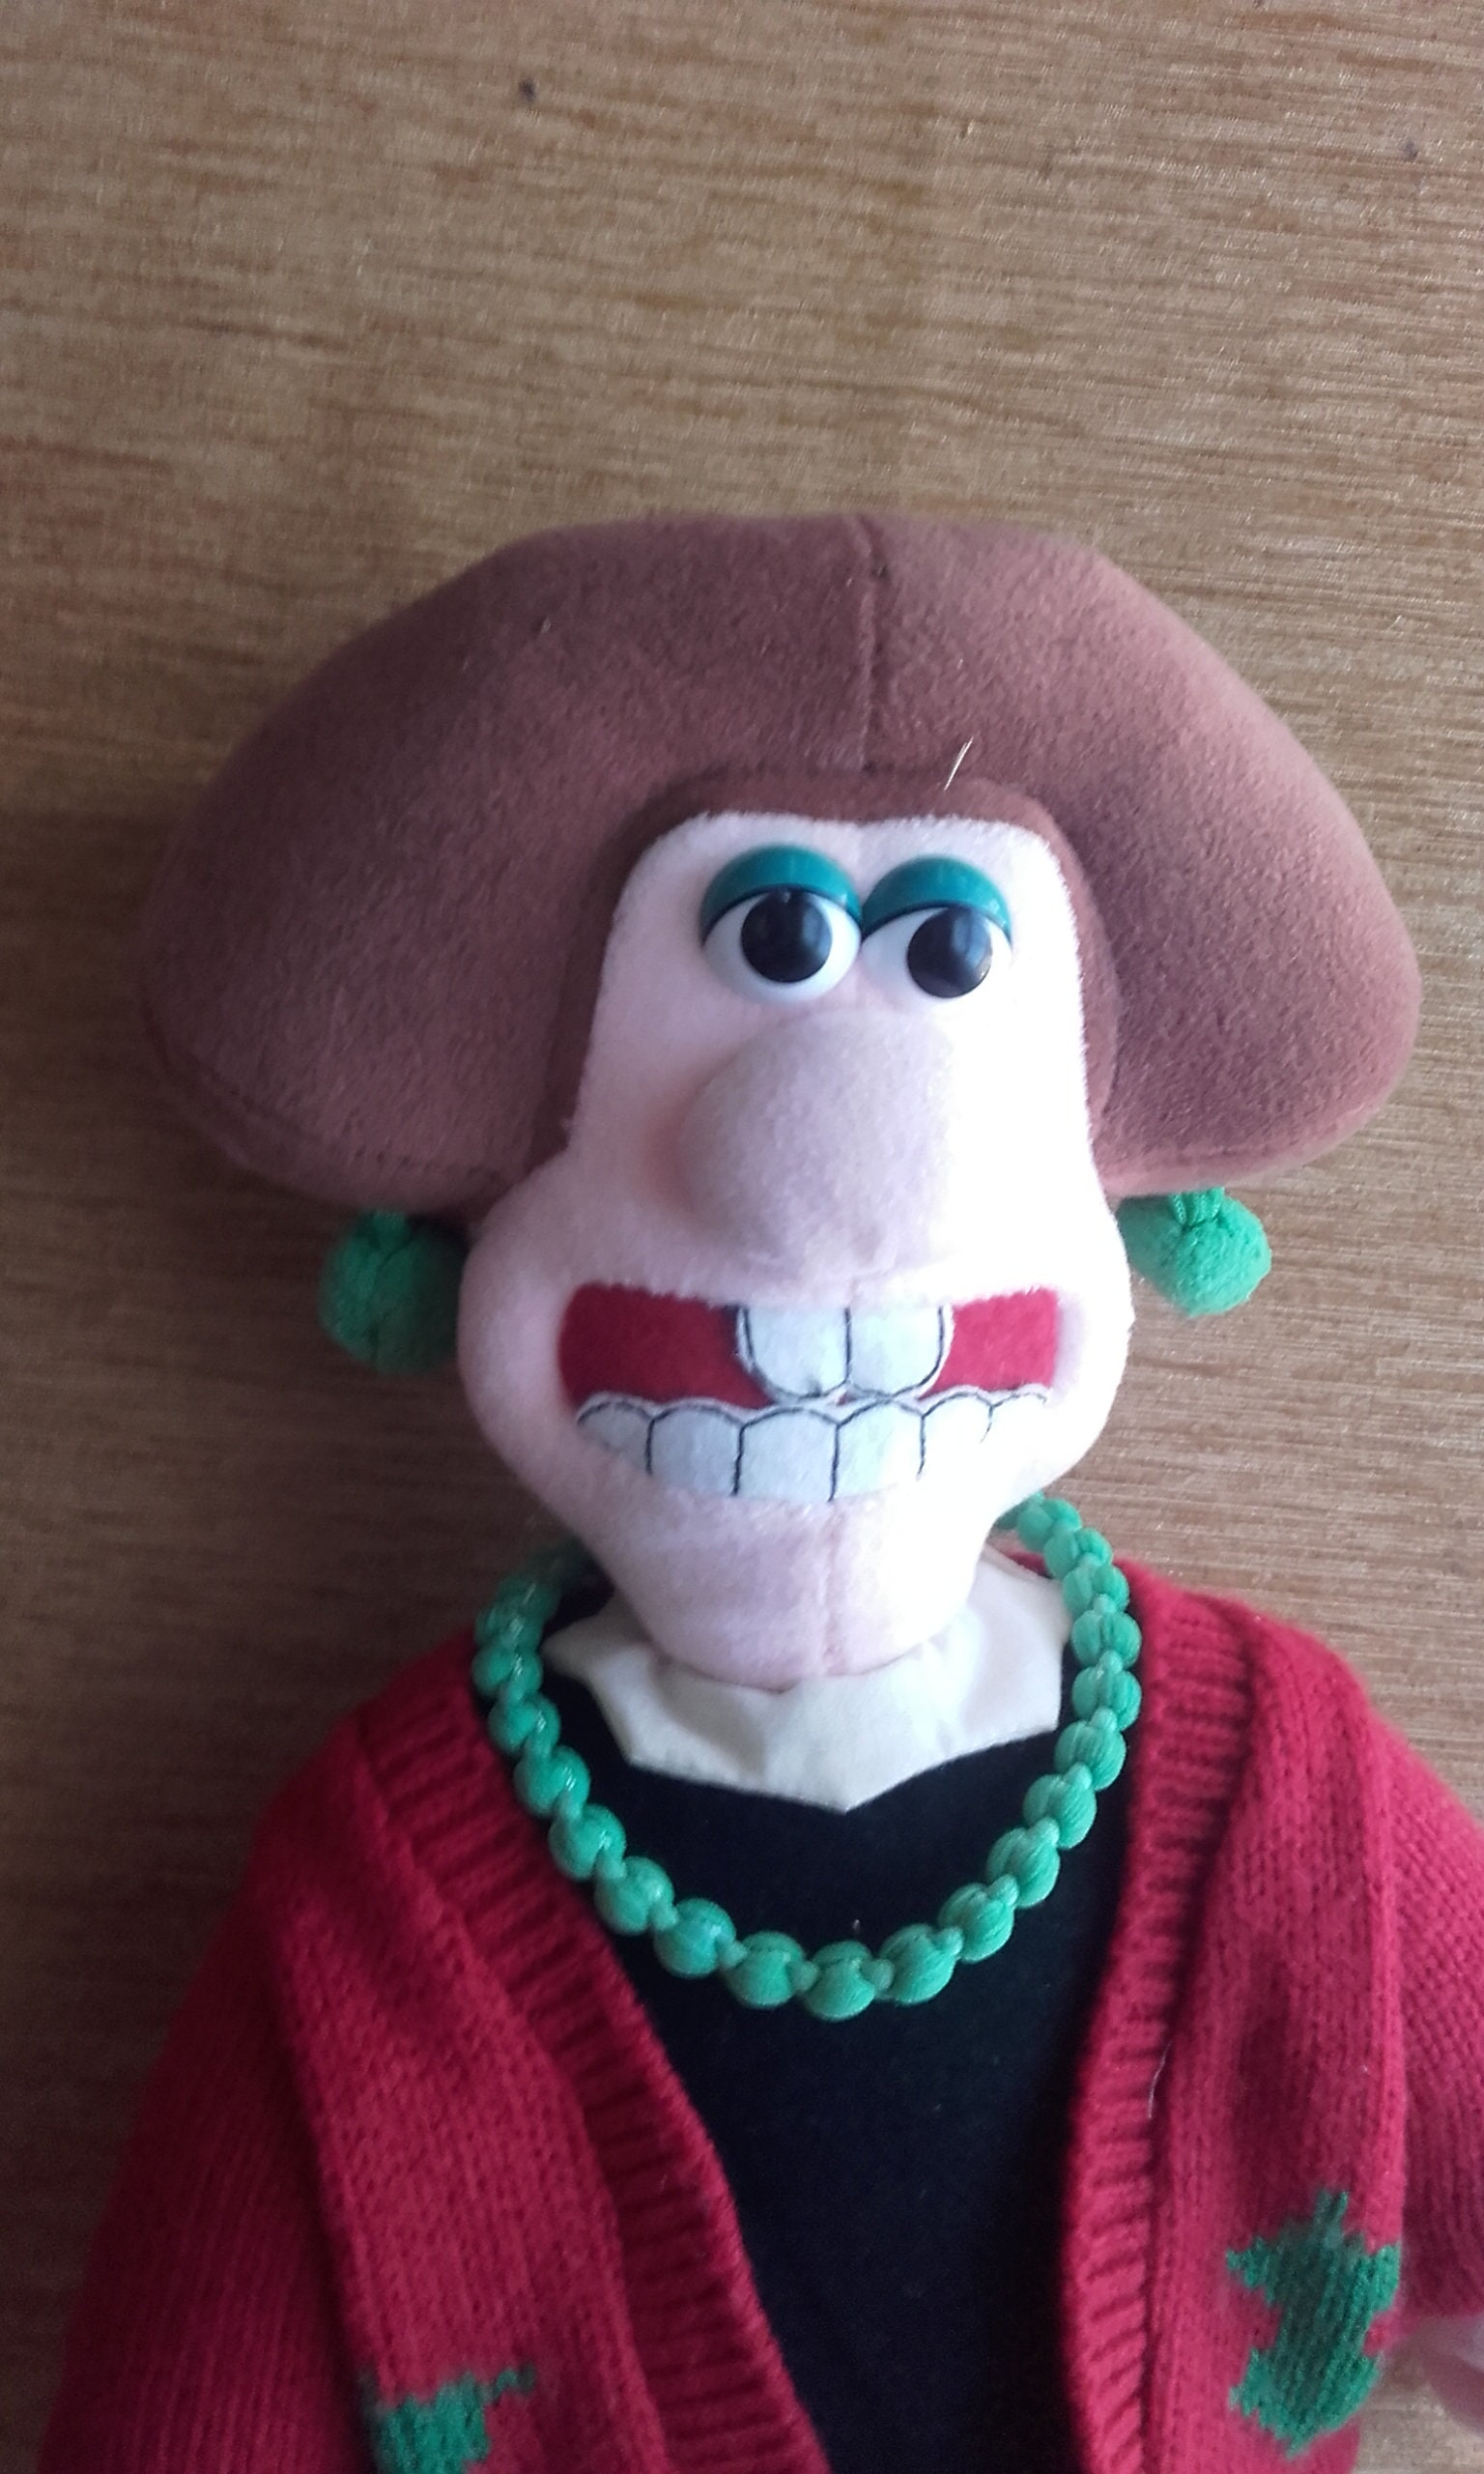 Wallace and Gromit Vintage Wendolene in Christmas Cardigan Stuffed Cuddly Soft Toy. 1989. Made by Born to Play TM. Plush Clean Condition.